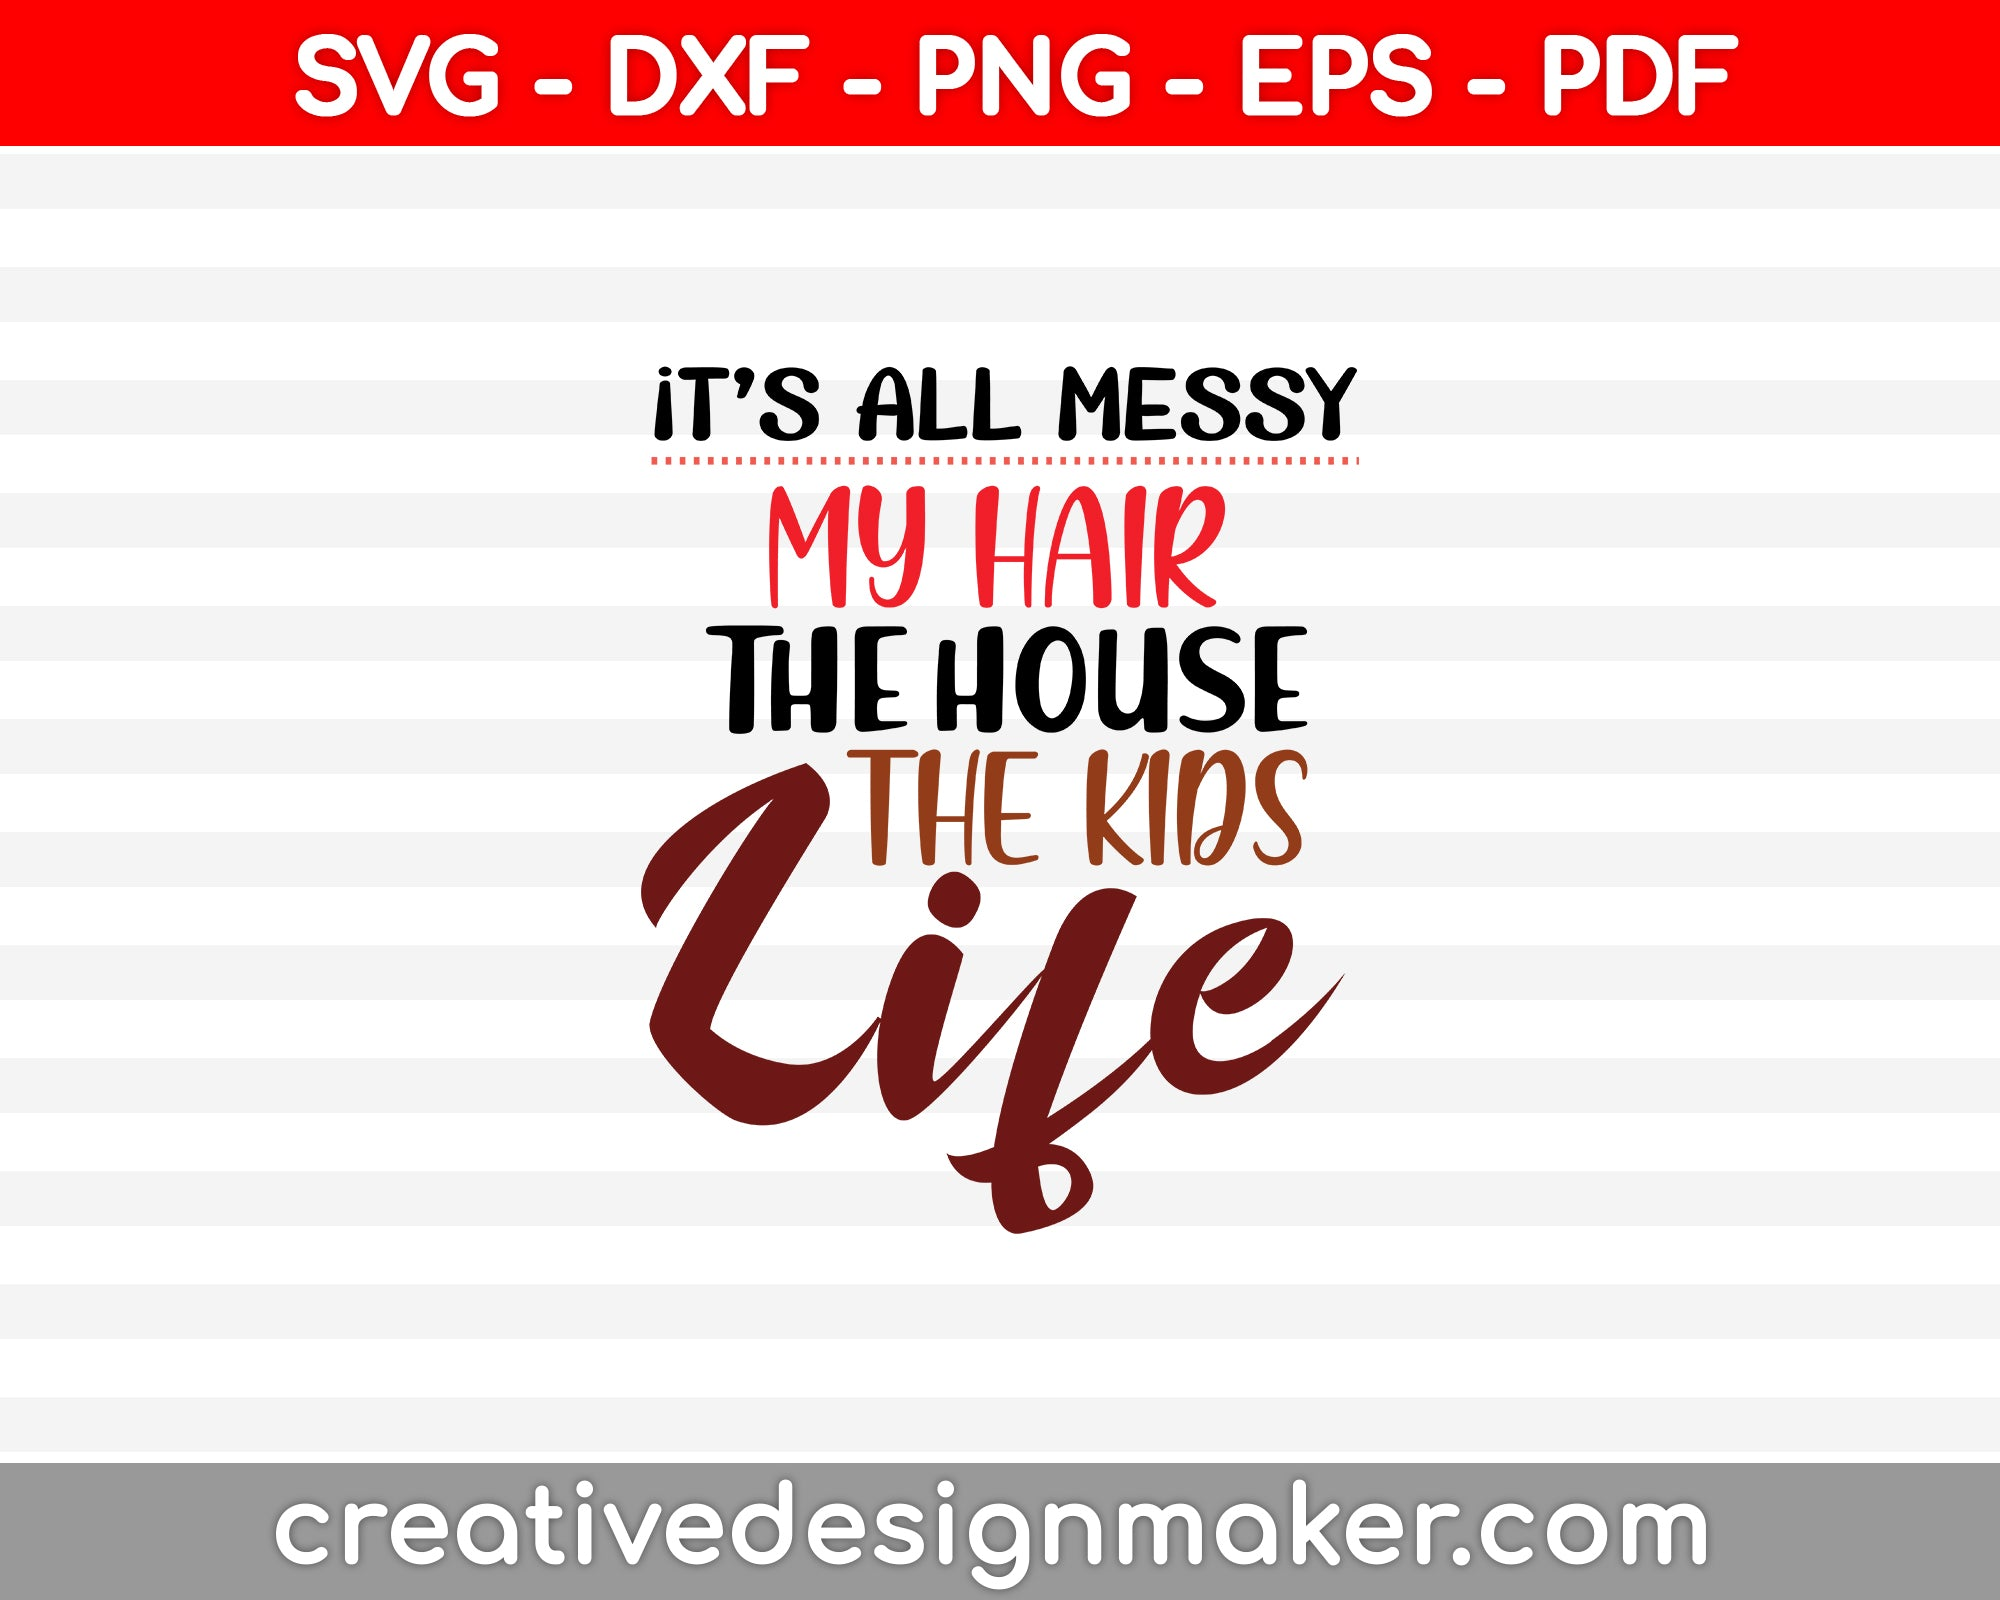 It's All Messy Funny Mom SVG PNG Cutting Printable Files